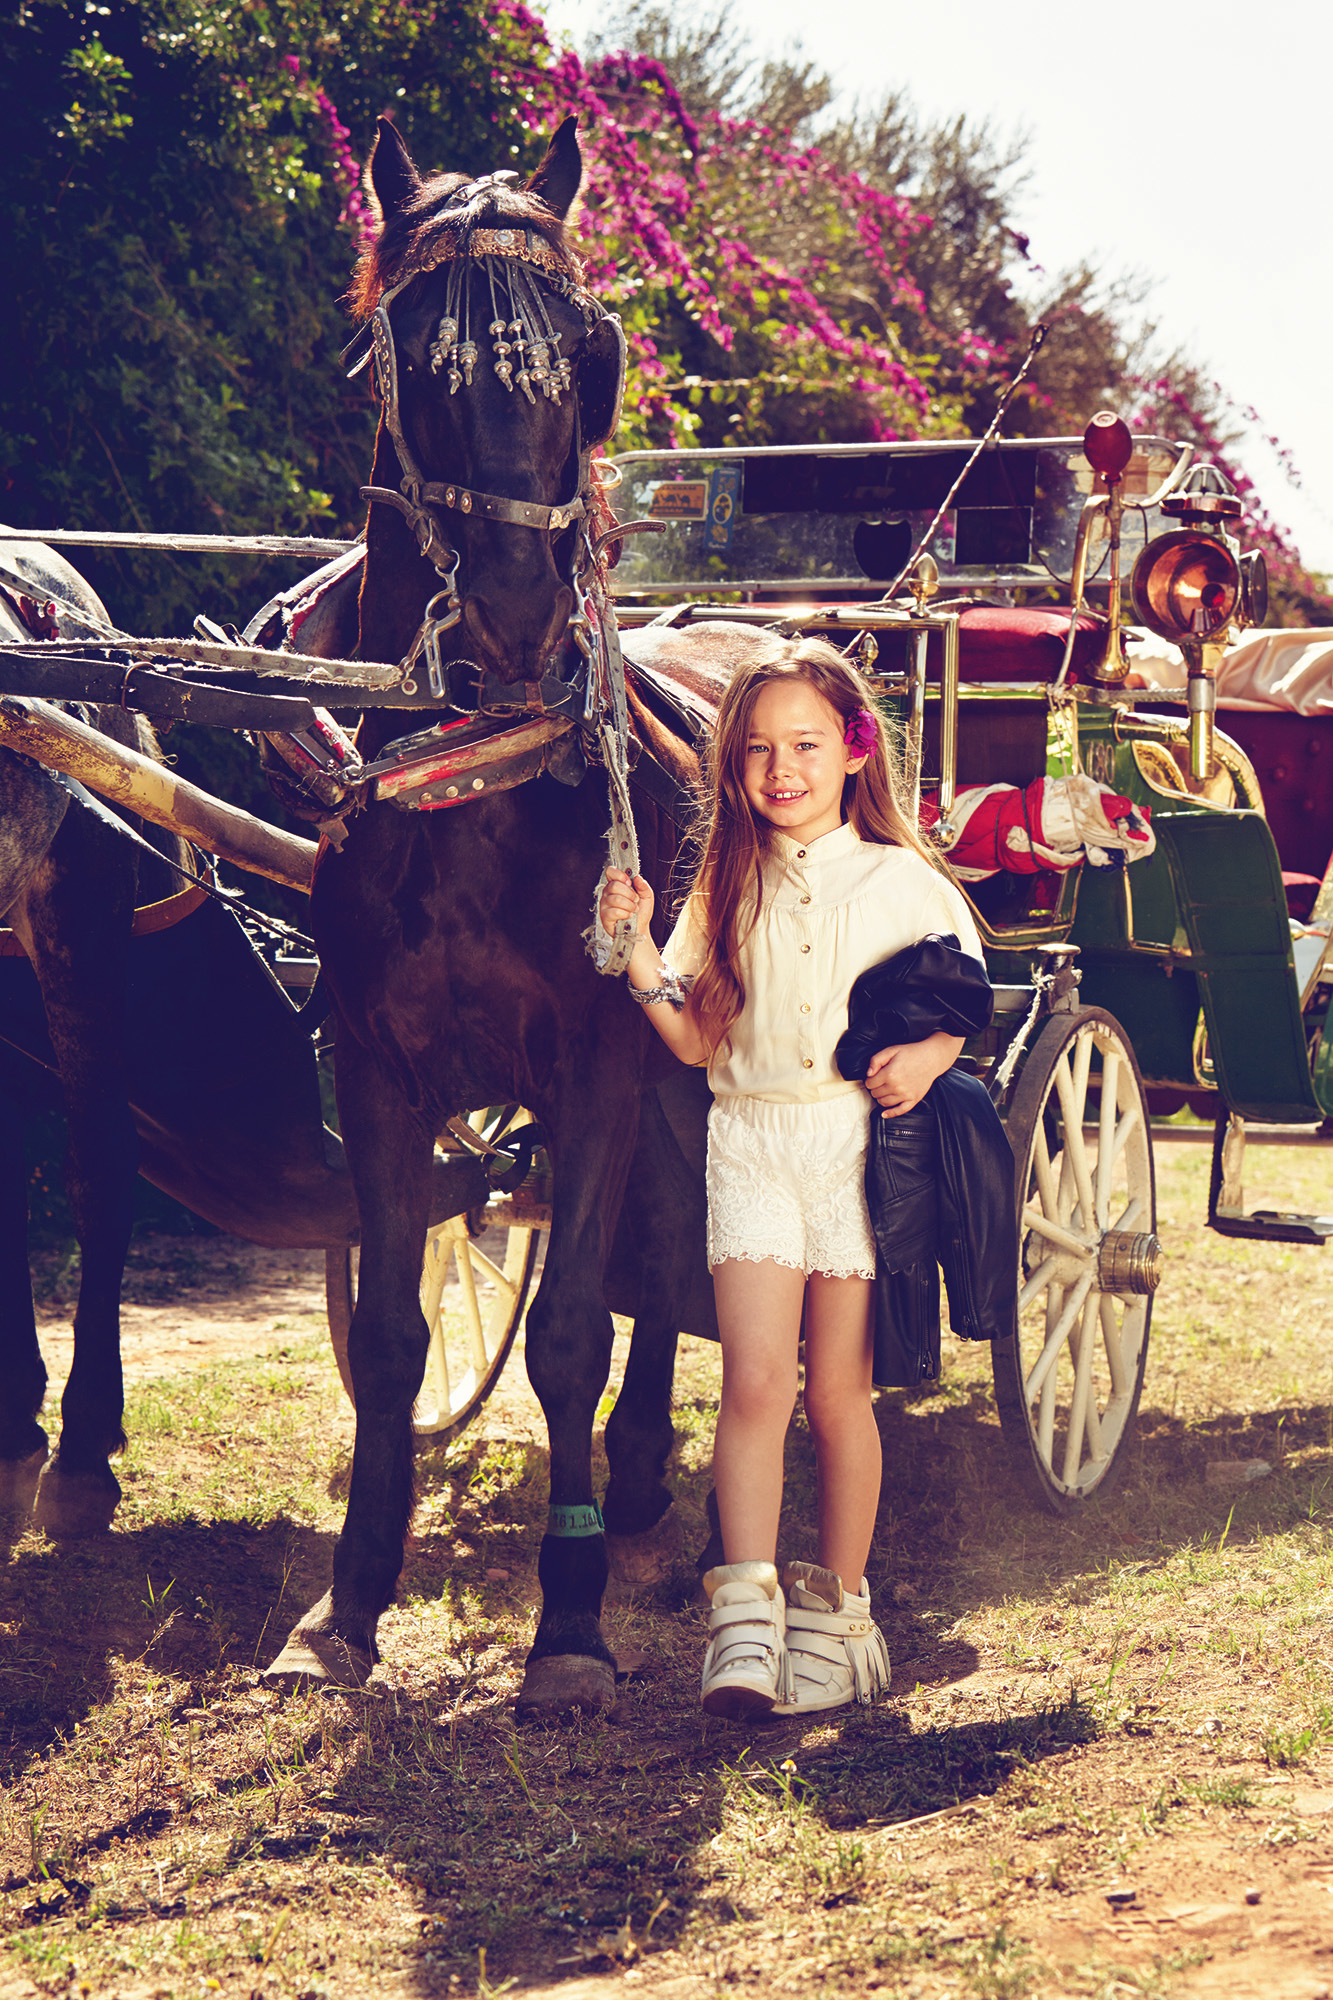 Ilve Little - girl standing by horse and cart